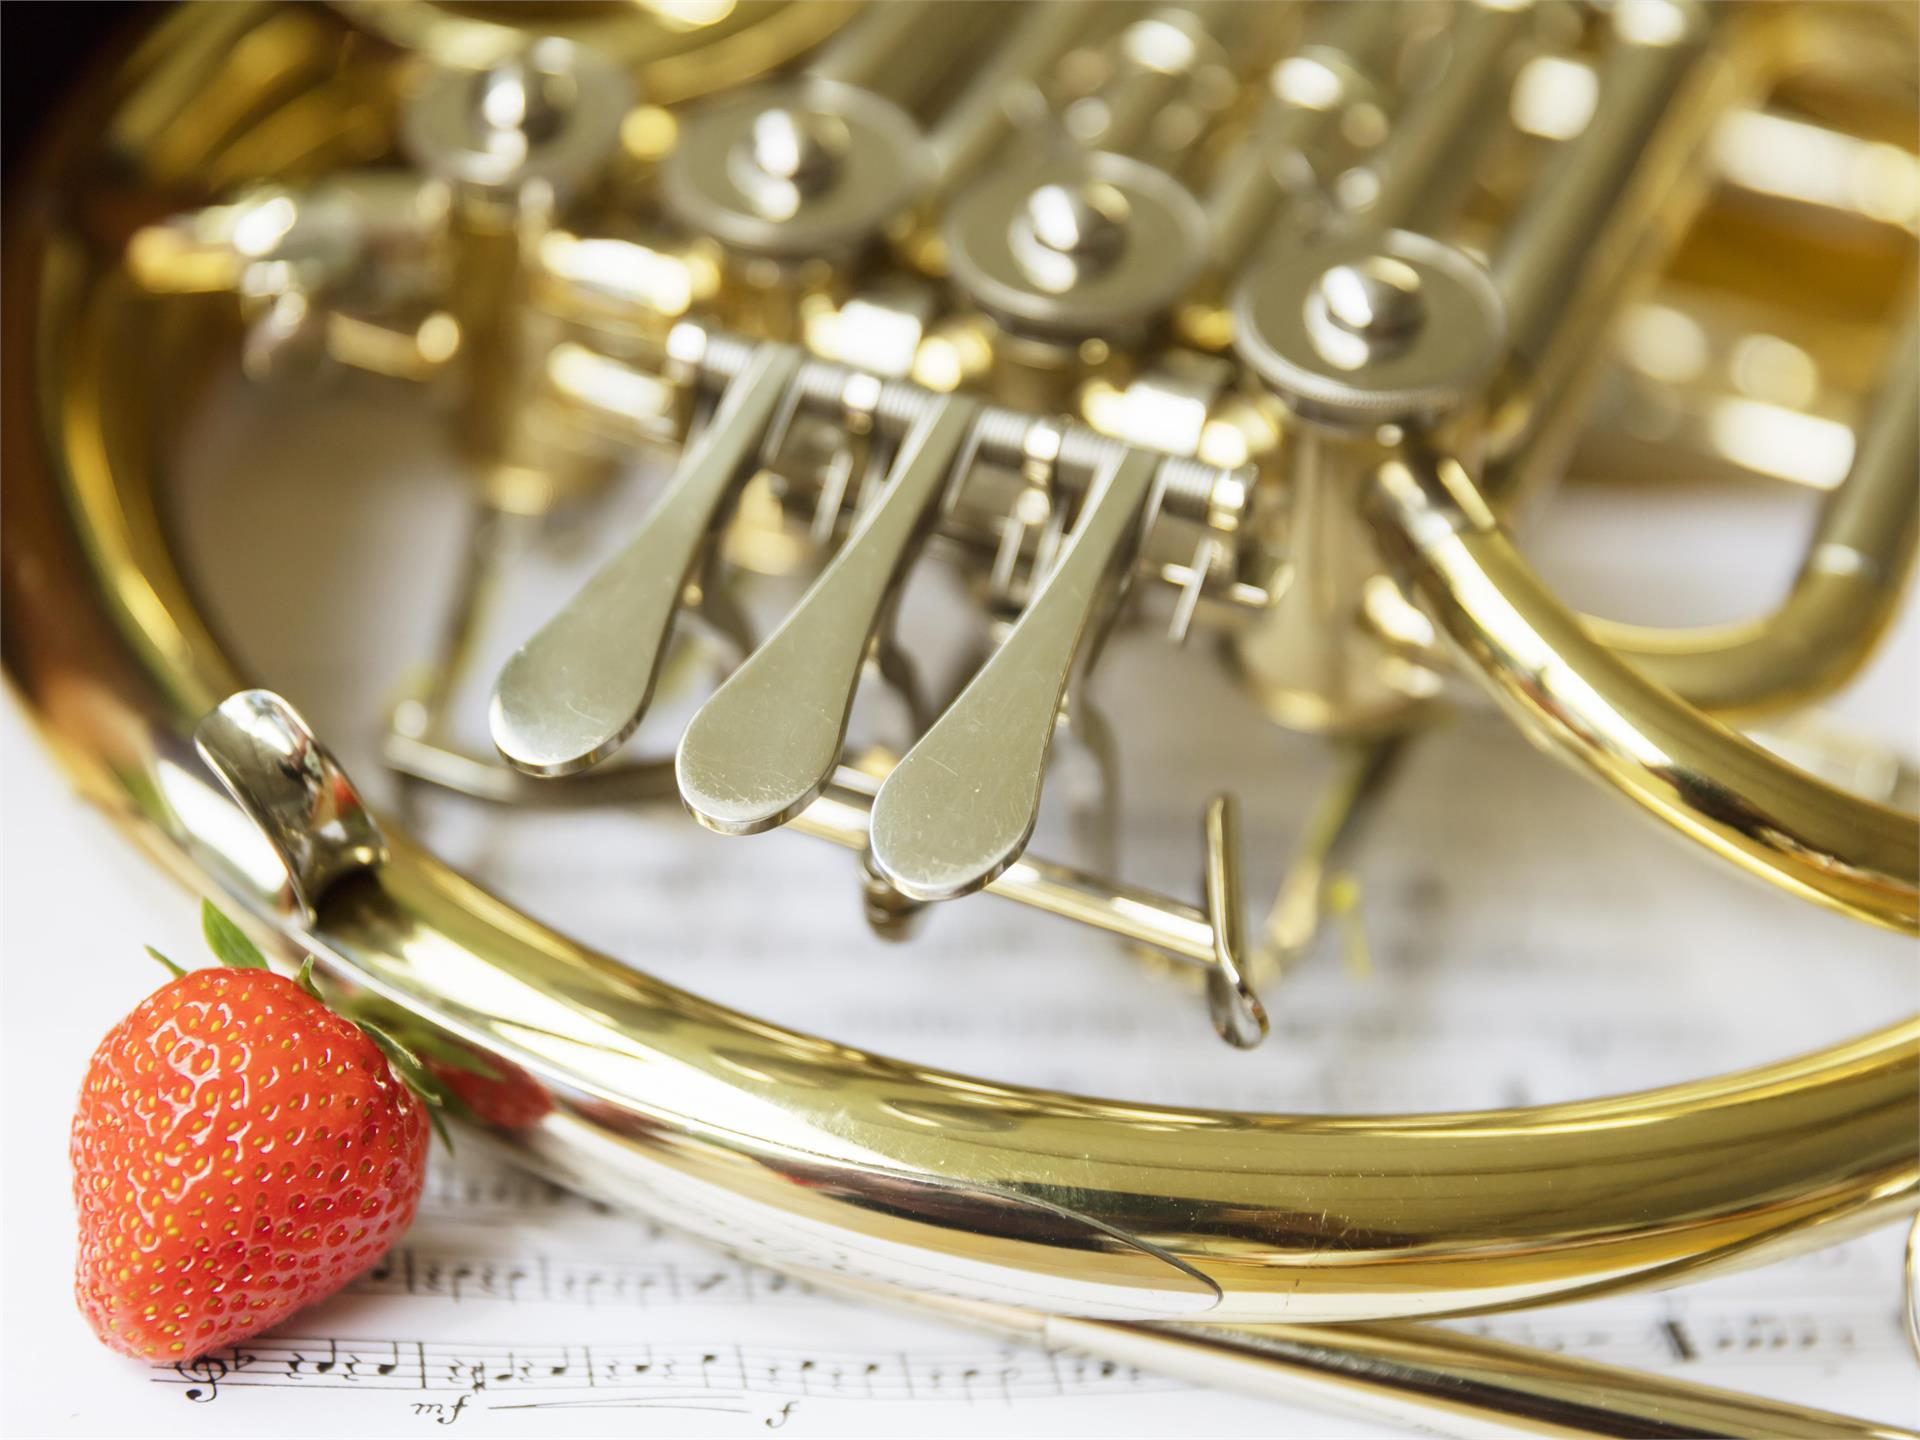 Easter concert from the music band of Tarres